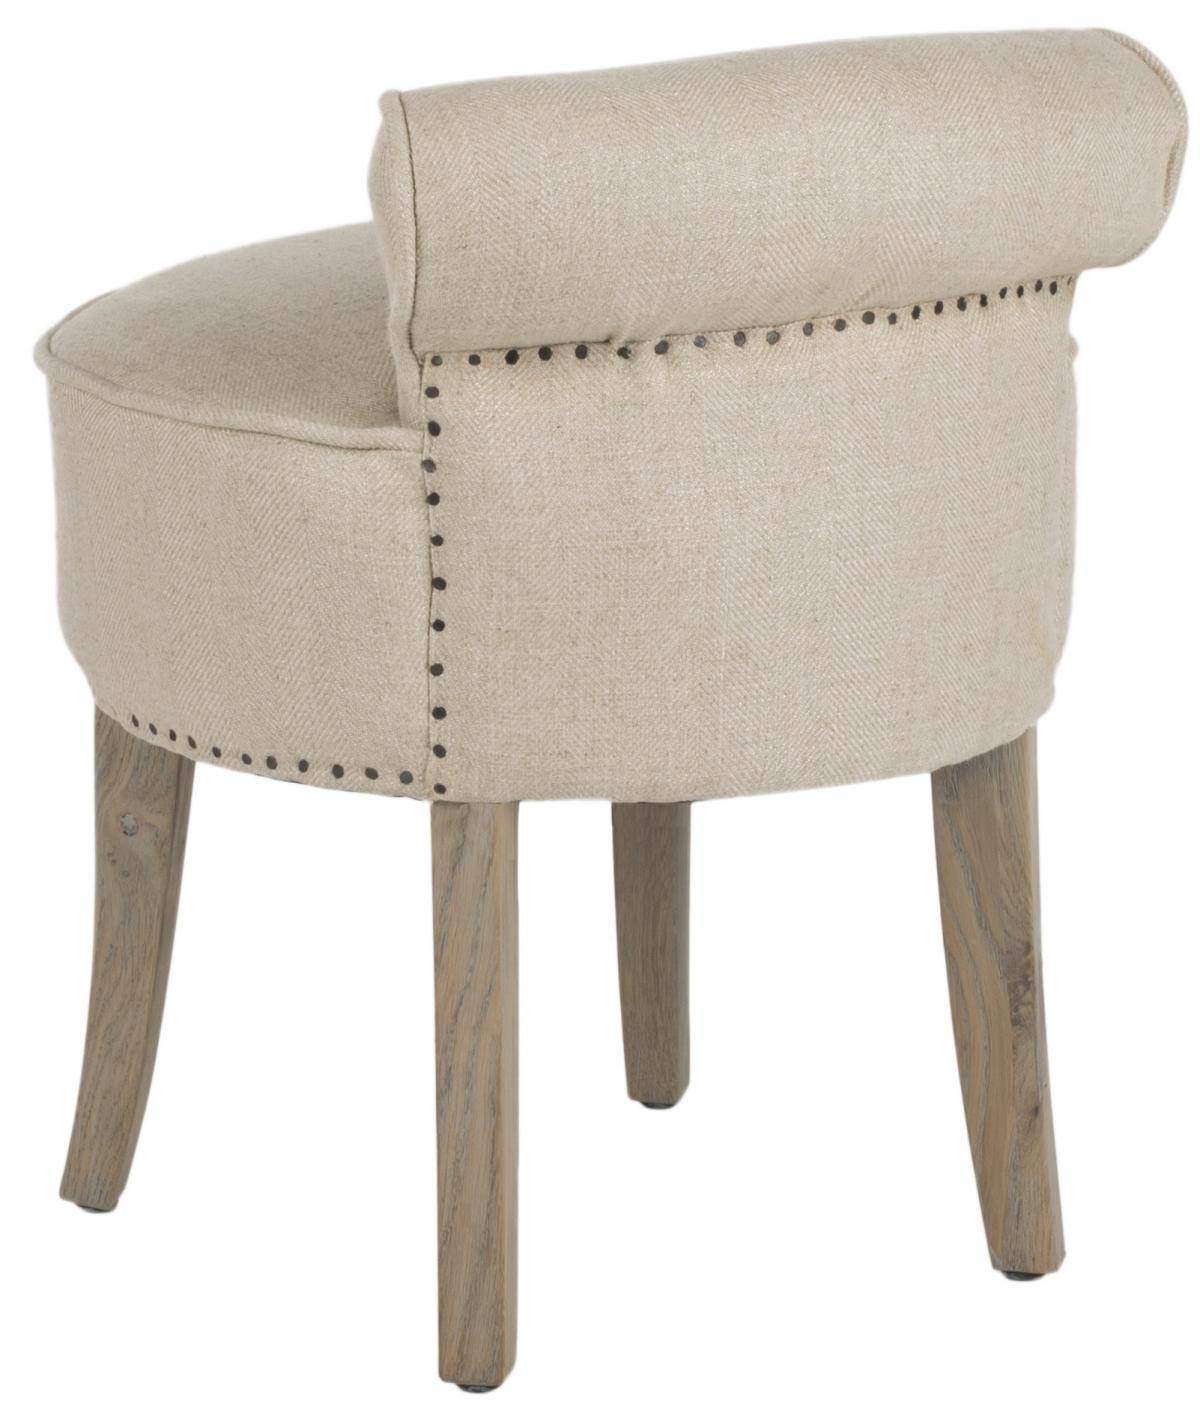 Safavieh - MCR4546G GEORGIA VANITY CHAIR - PEARL